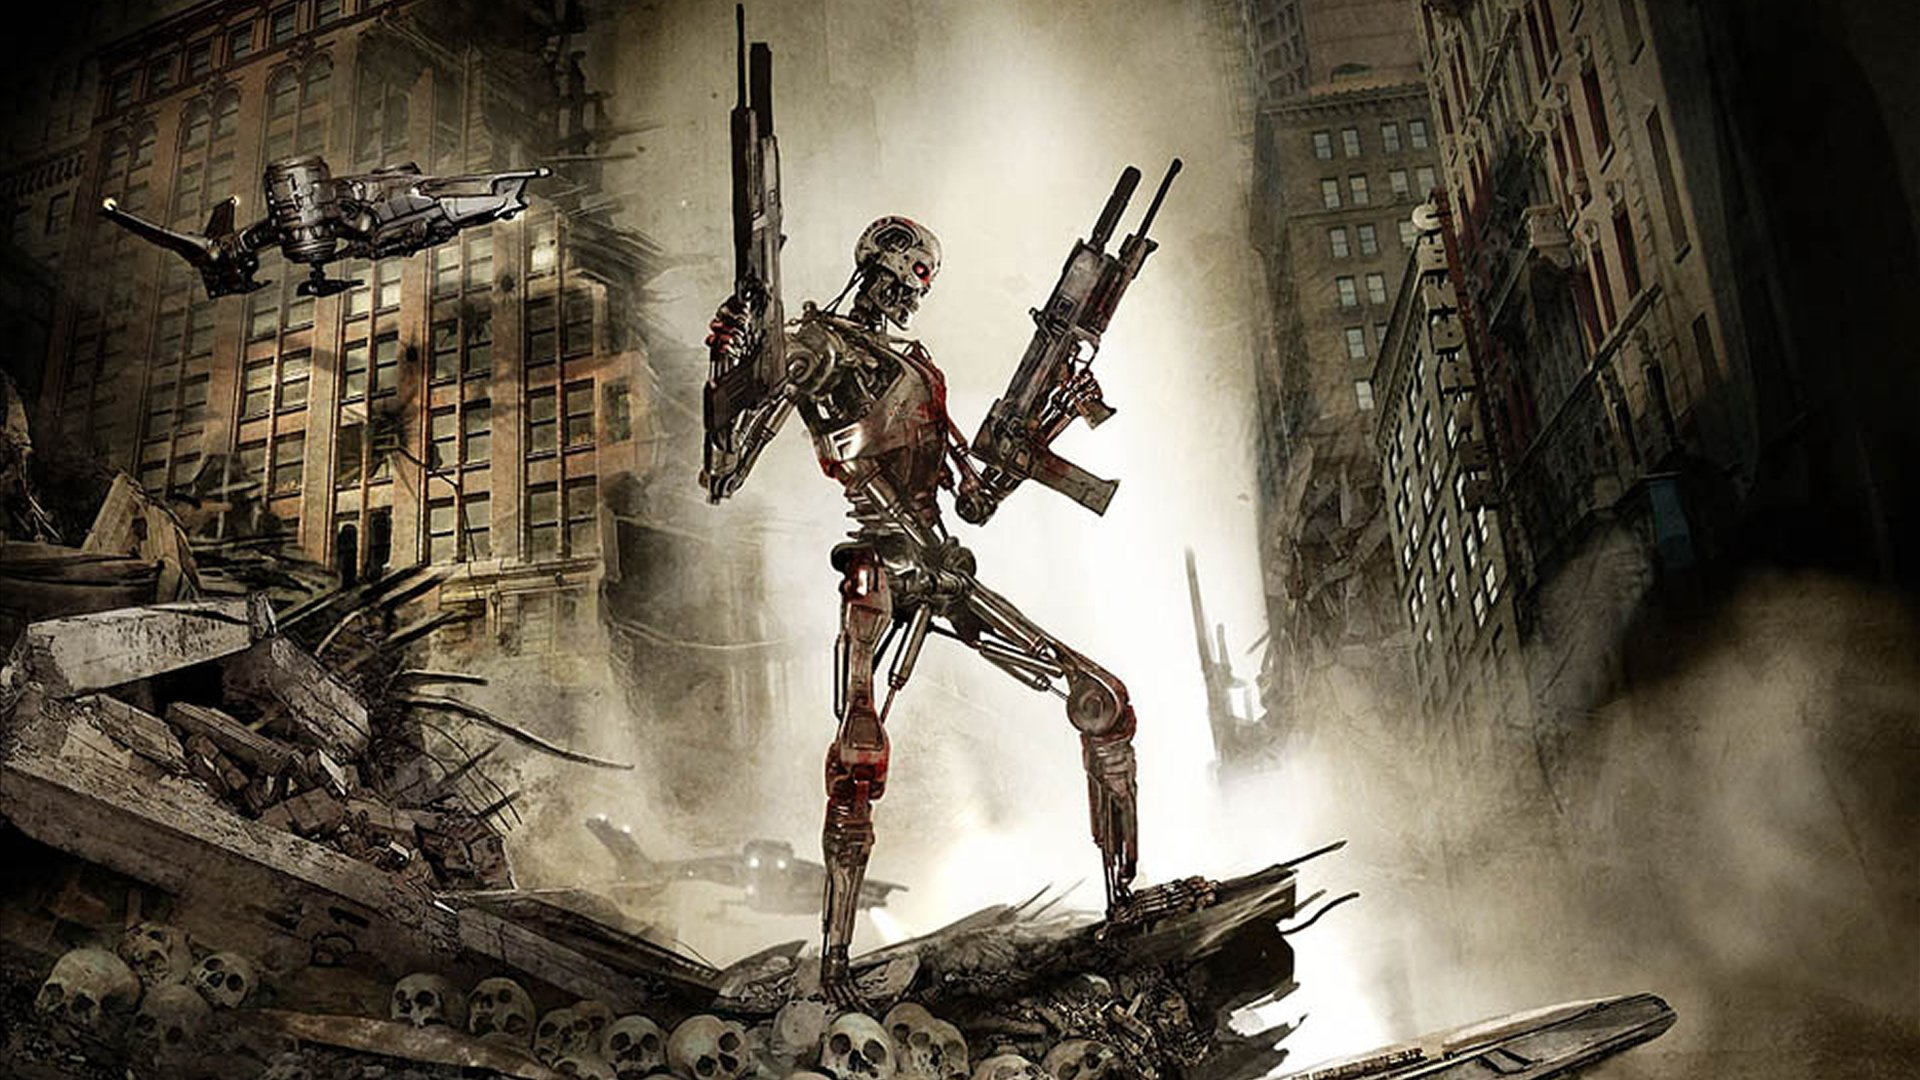 steampunk action wallpapers - photo #47